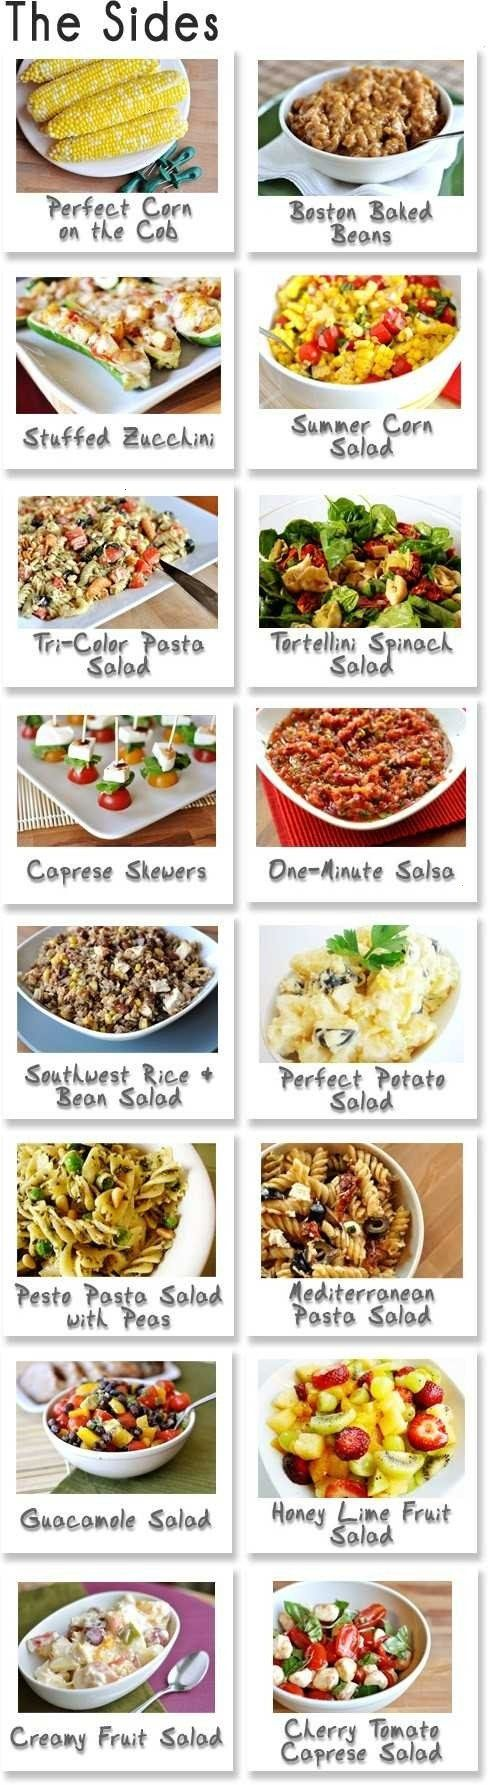 Must make some of these sides